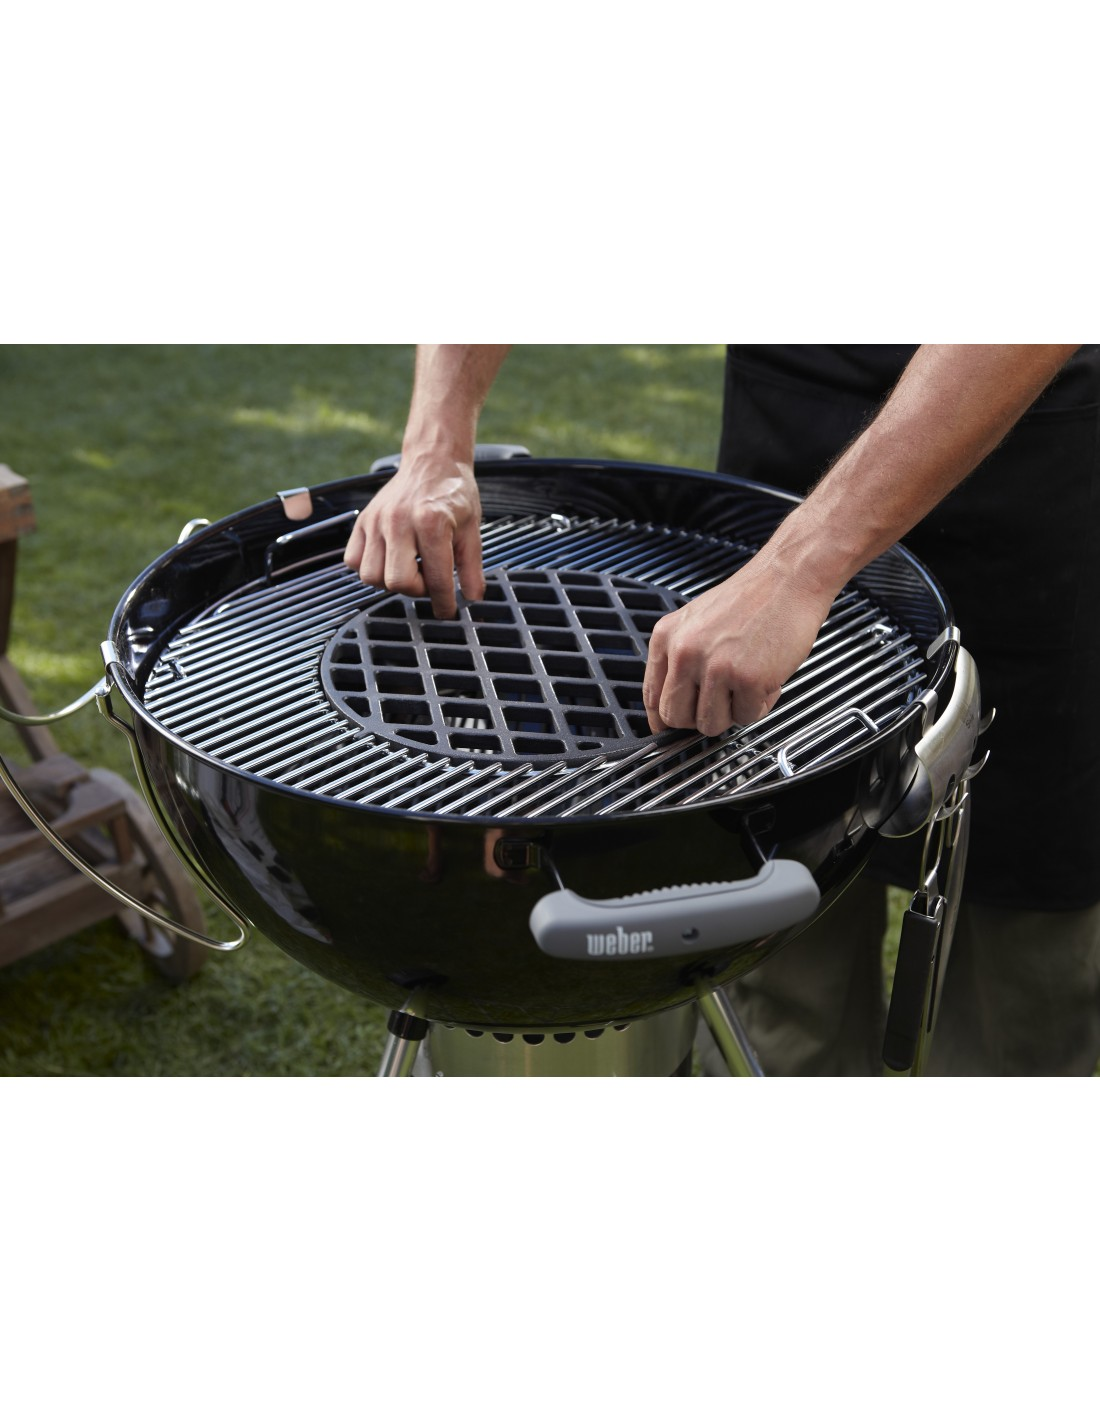 grille de saisie gourmet barbecue system gbs pour barbecue weber. Black Bedroom Furniture Sets. Home Design Ideas